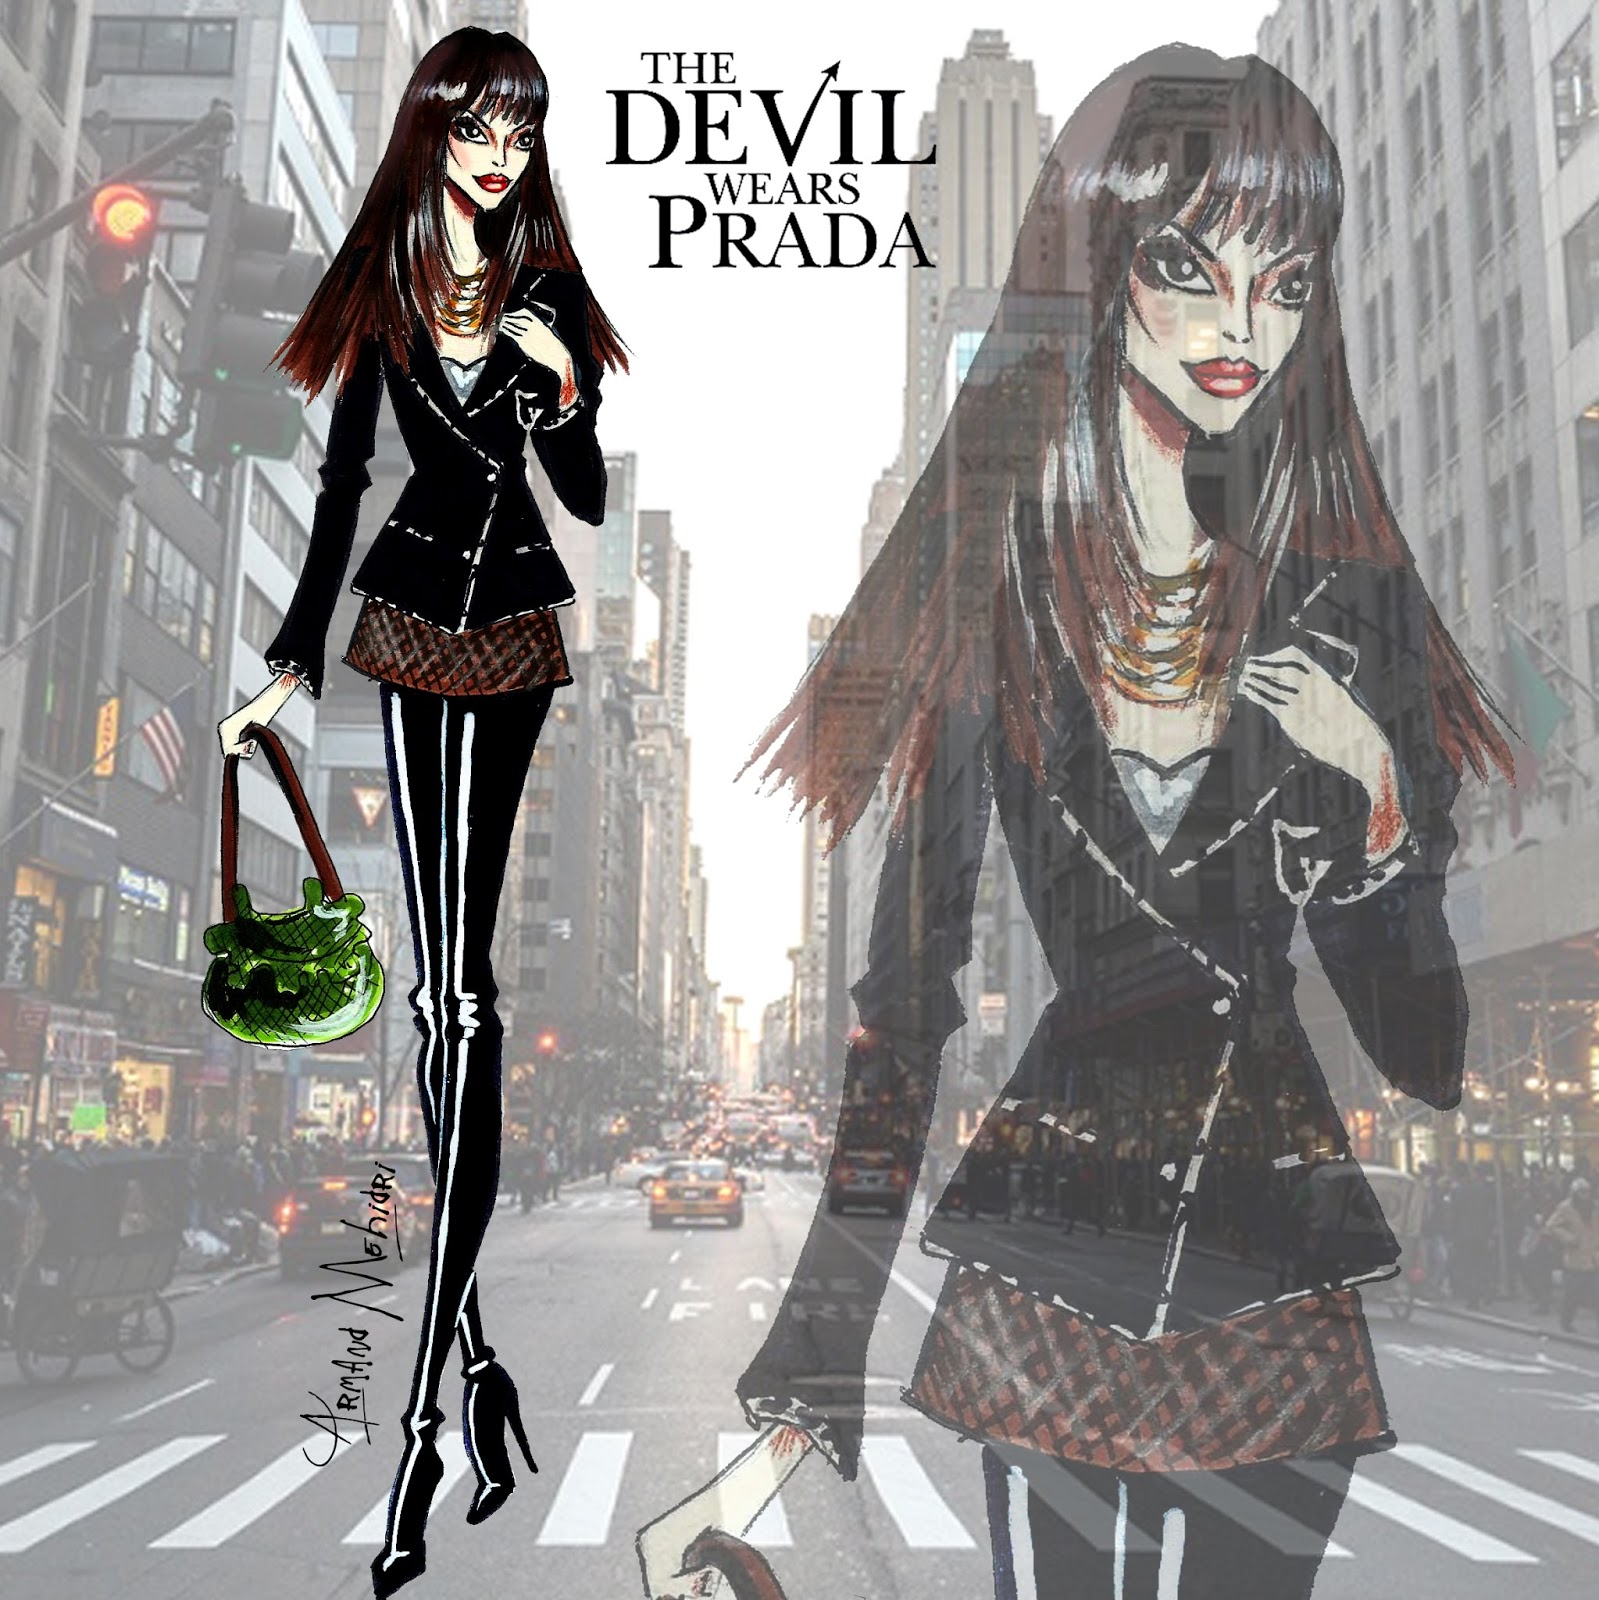 andy outfits from devil wears prada